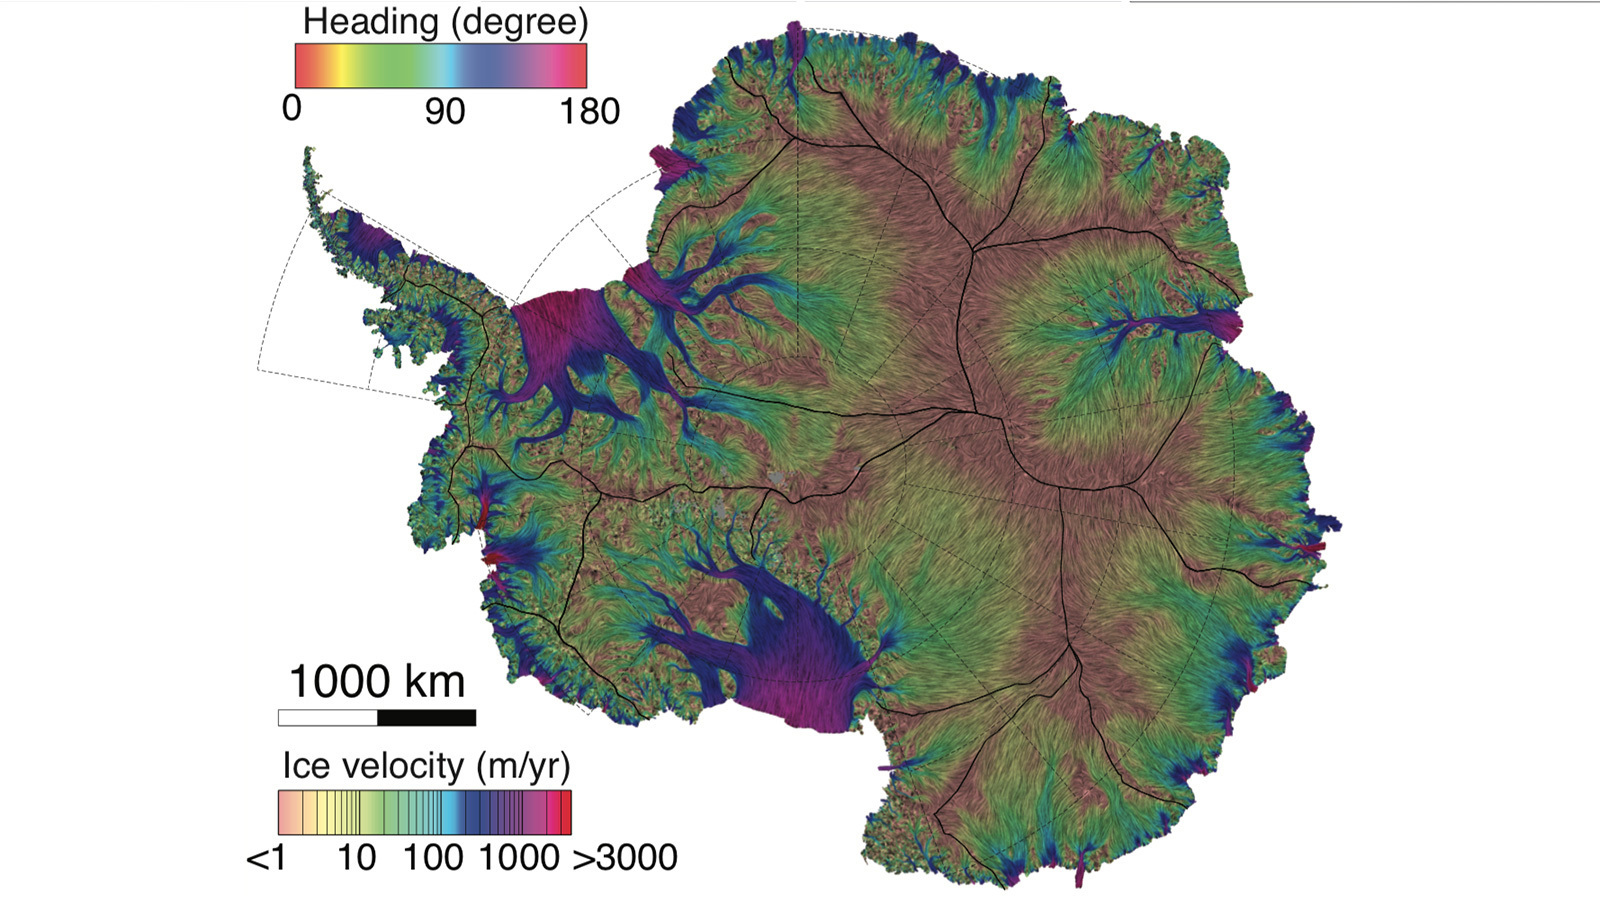 This new NASA/UC Irvine map of ice velocity in Antarctica is 10 times more accurate than any previous map and shows flows over 80 percent of the continent, where older maps showed about 20 percent. Colored lines indicate direction of flow; background colors show speed. Credit: UCI/Jeremie Mouginot › Larger view